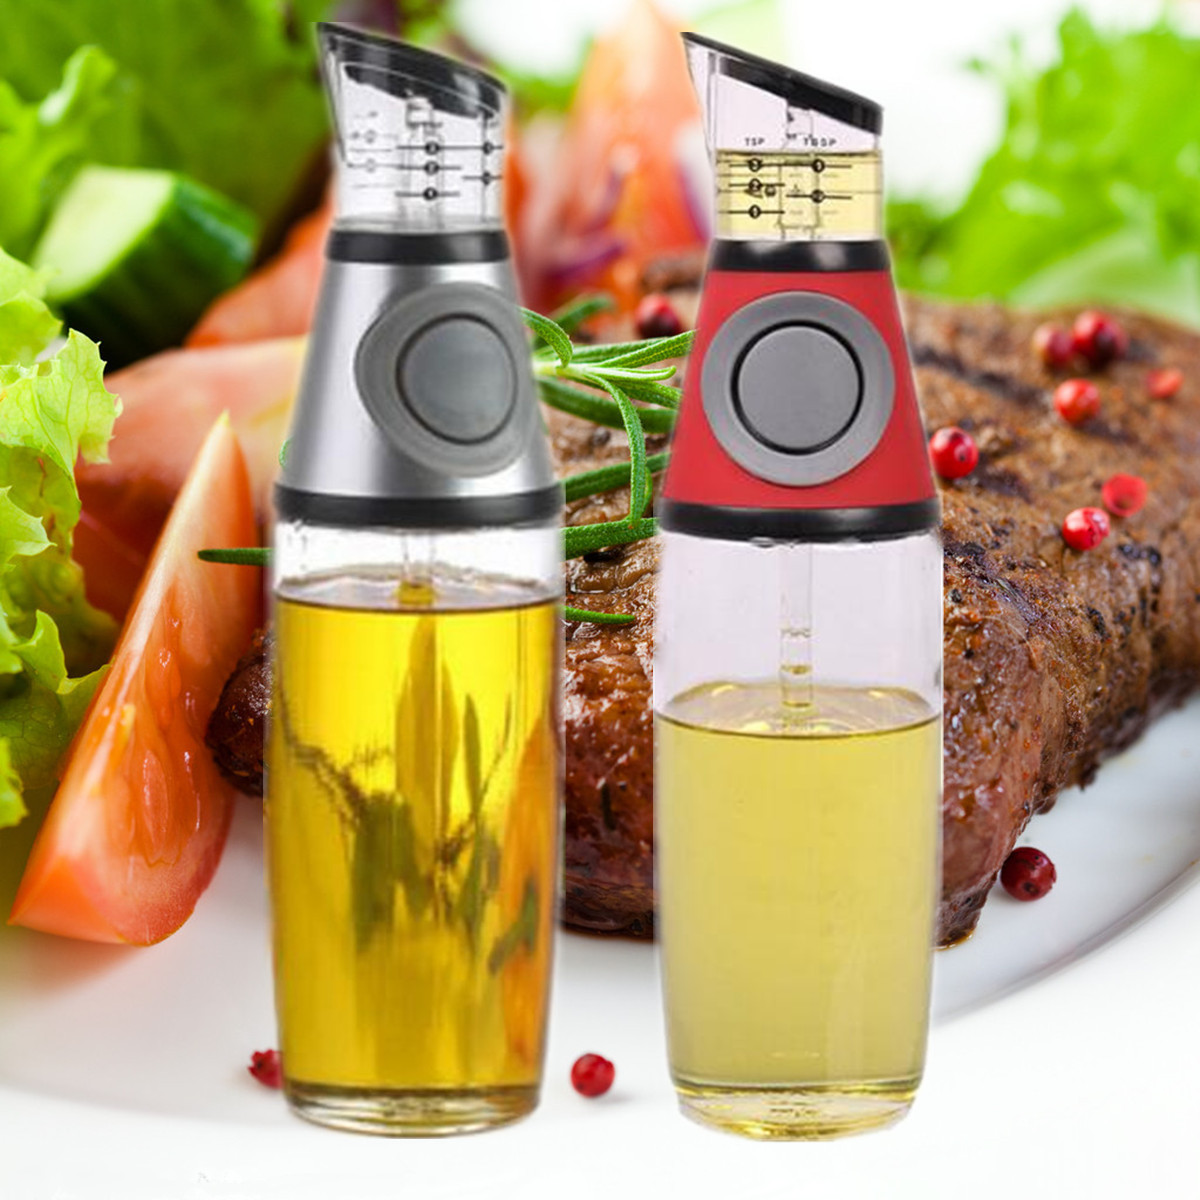 500ml Kitchen No-Drip Spout Glass Gravy Boat Olive Oil Vinegar Dispenser Pourer Bottle Cooking Tools Tableware Leakproof